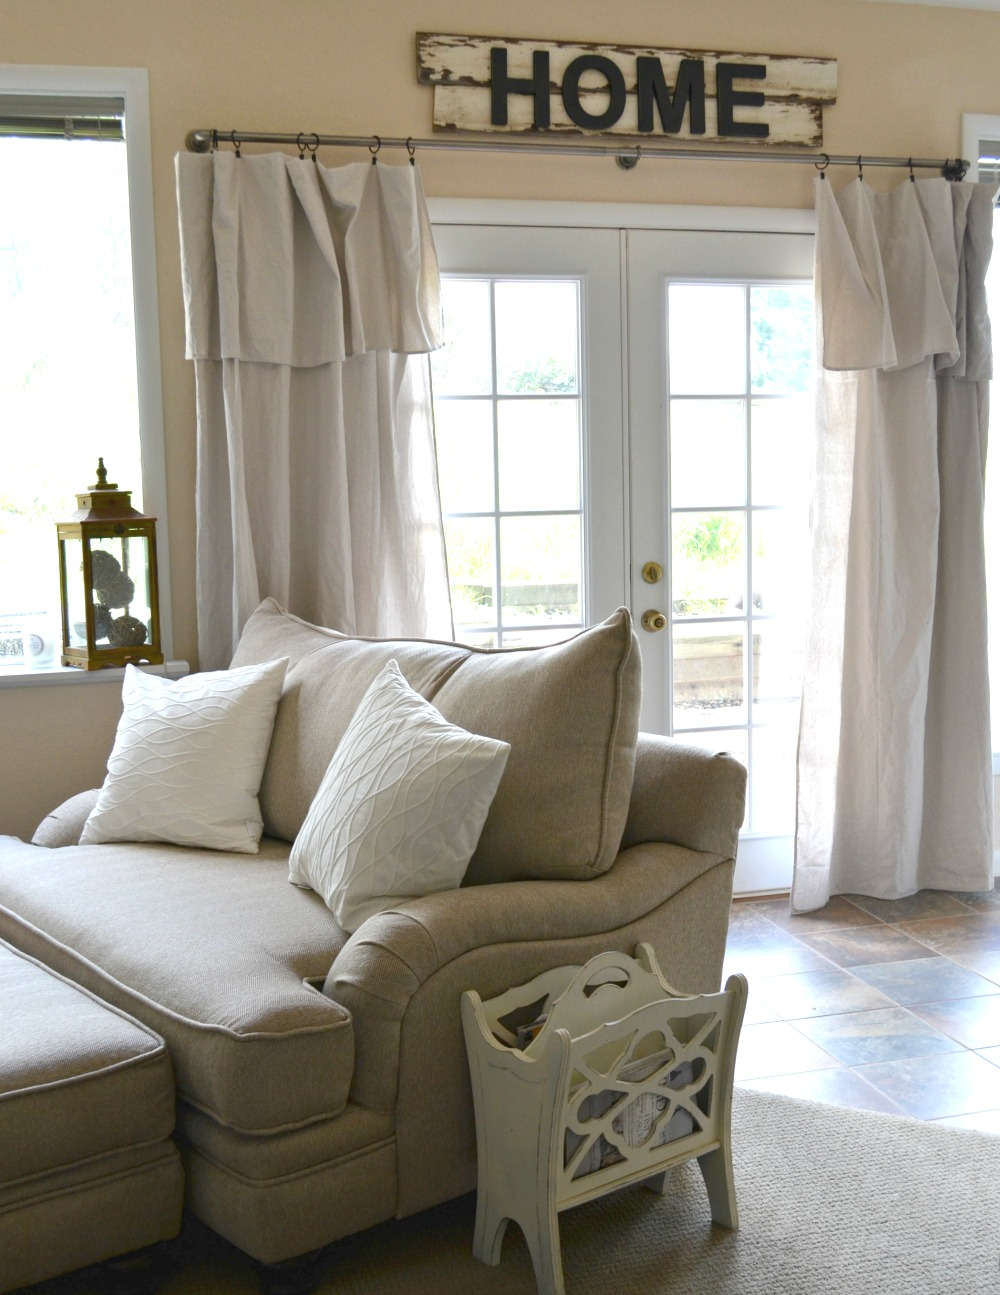 5 Easy and Cheap Farmhouse Style DIY Projects